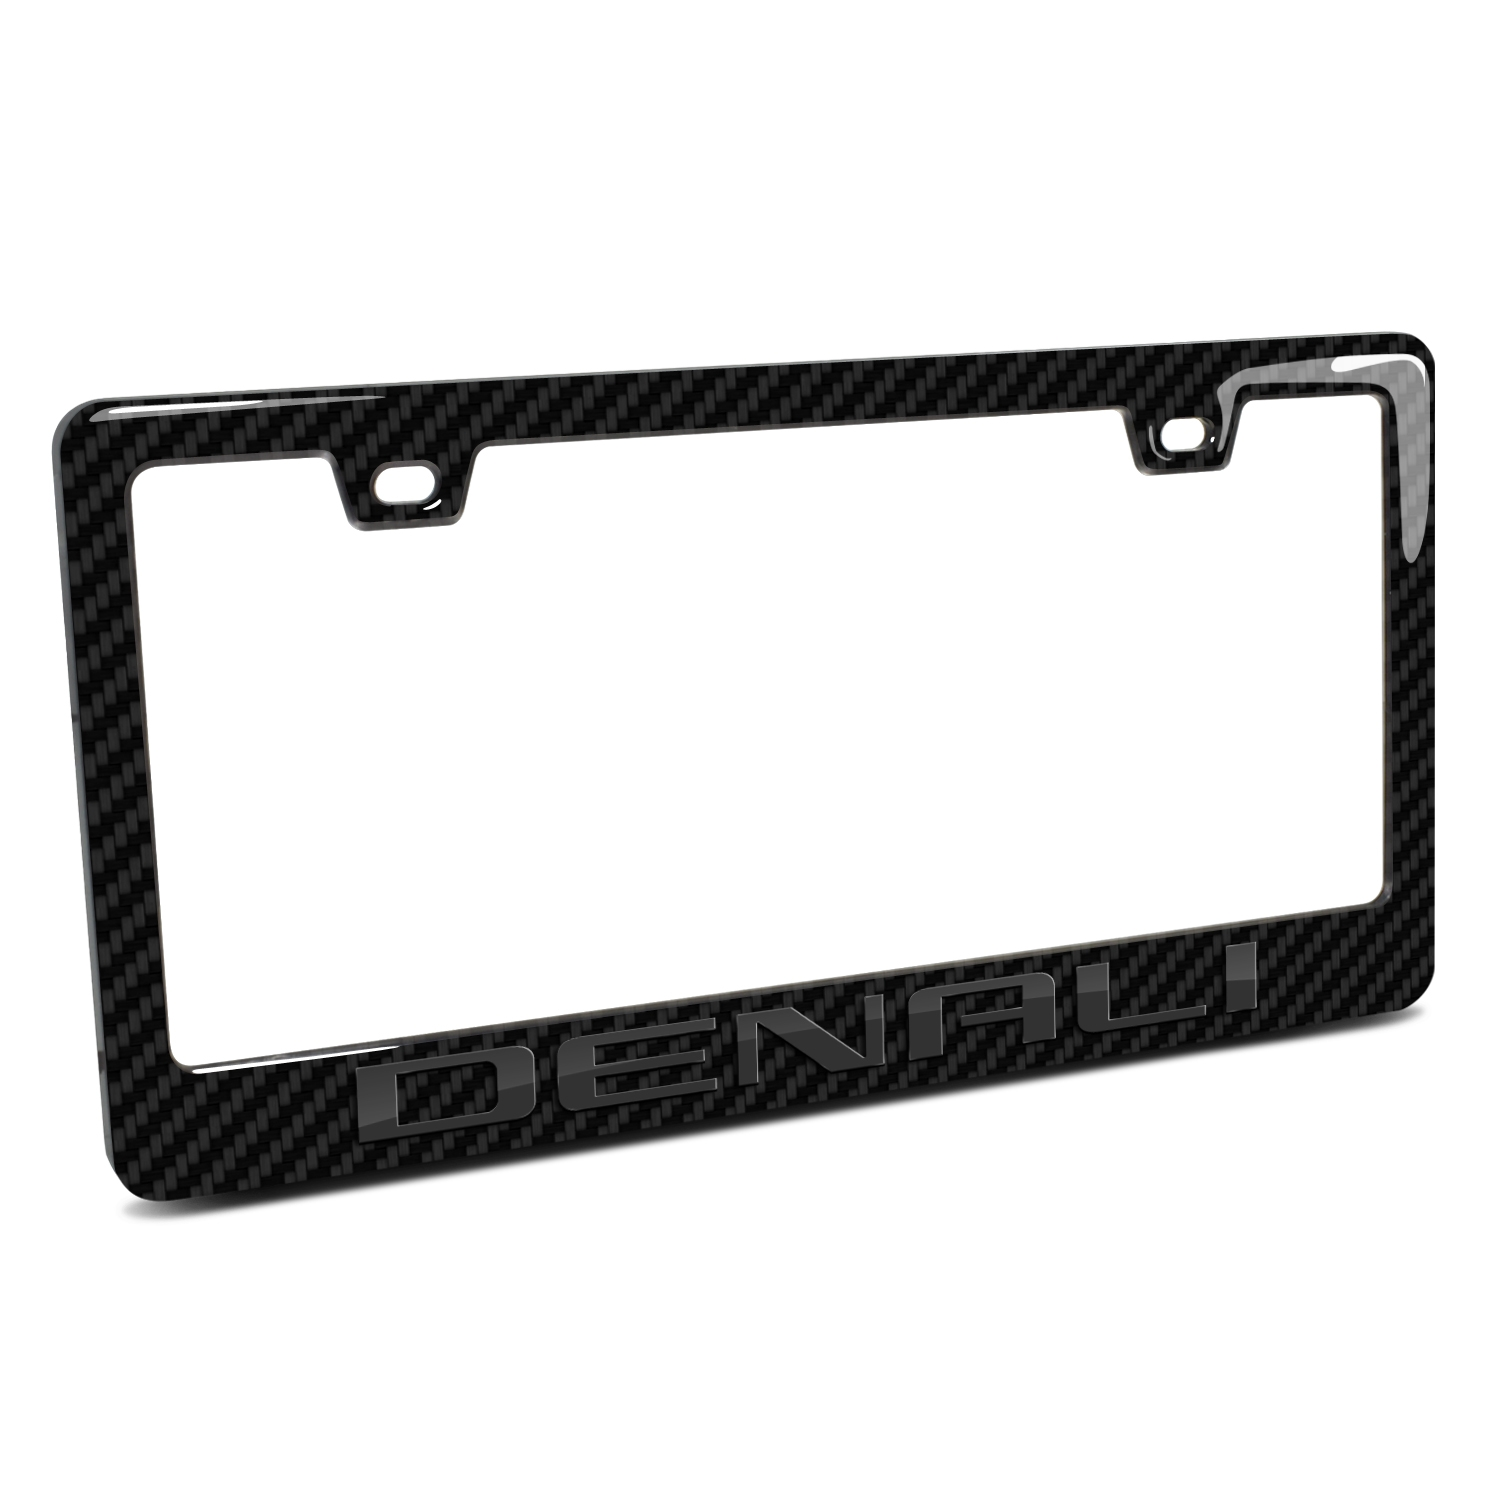 GMC Denali in 3D Black on Black Real 3K Carbon Fiber Finish ABS Plastic License Plate Frame